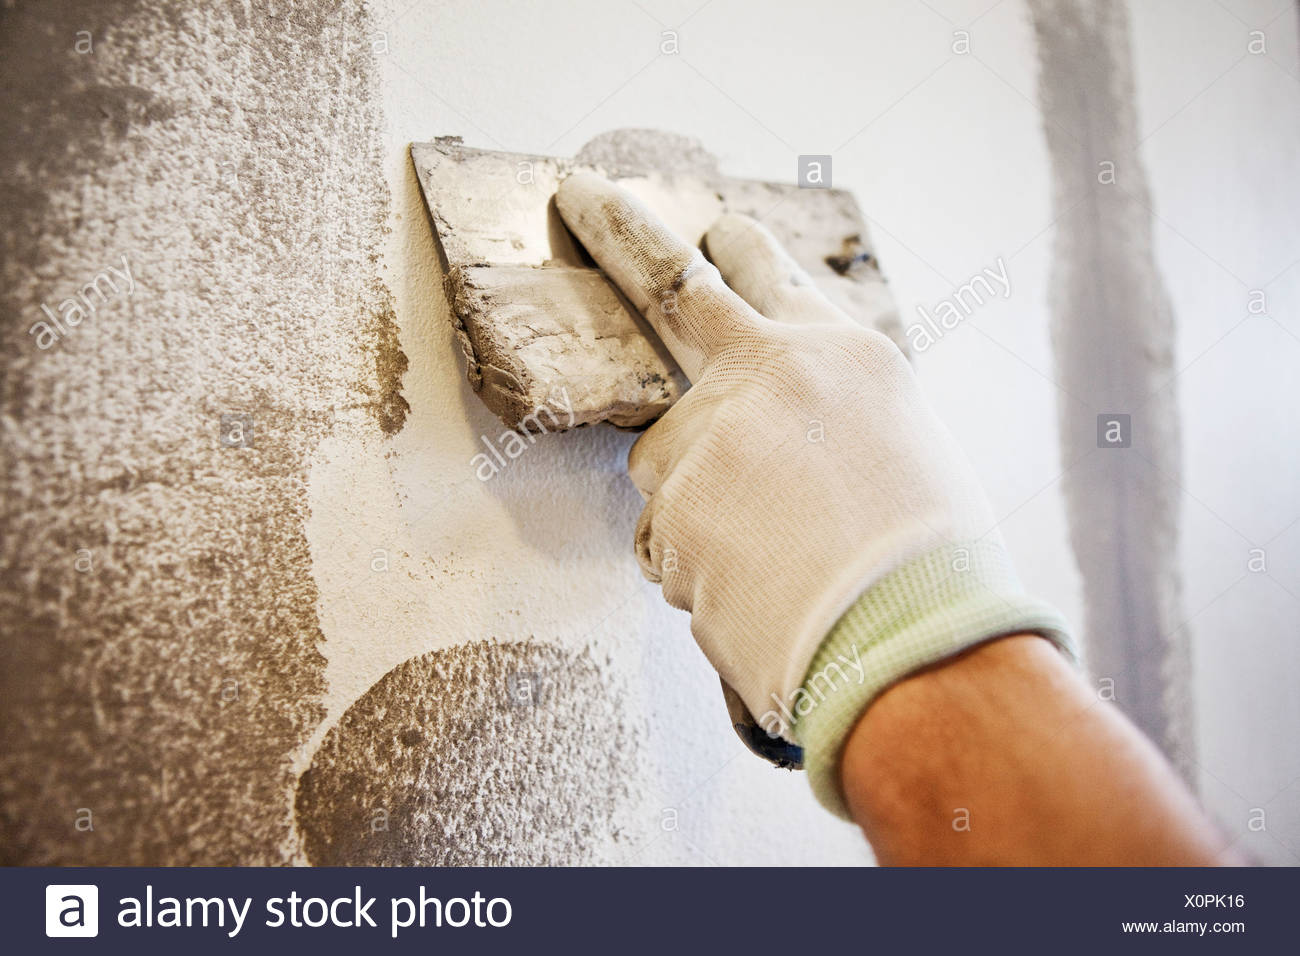 Caulking blade being used to spread filler - Stock Image